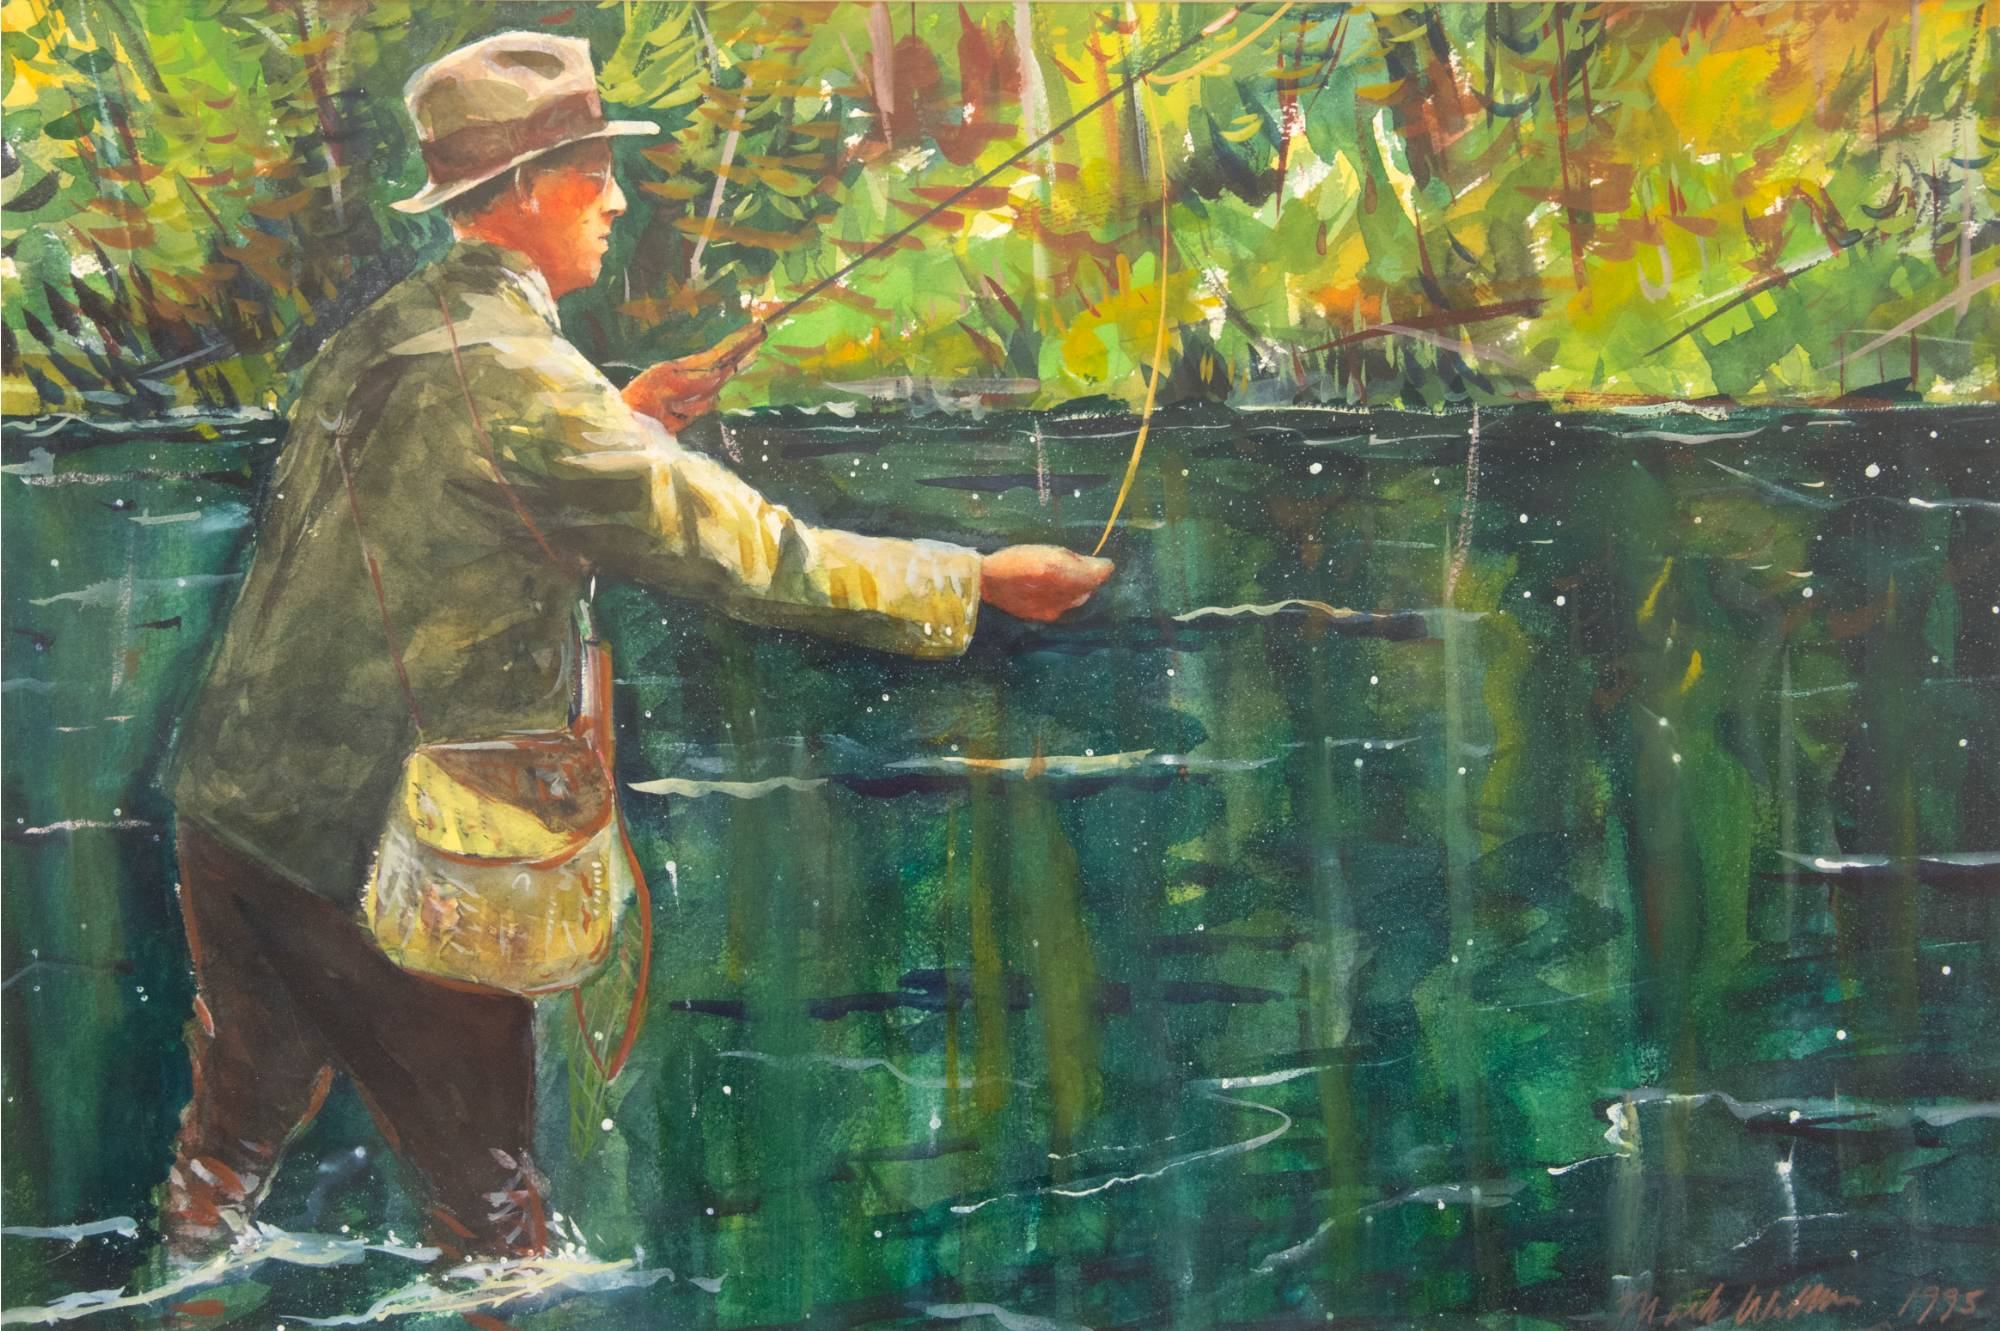 A man standing in the water fly fishing with green foliage in the background.